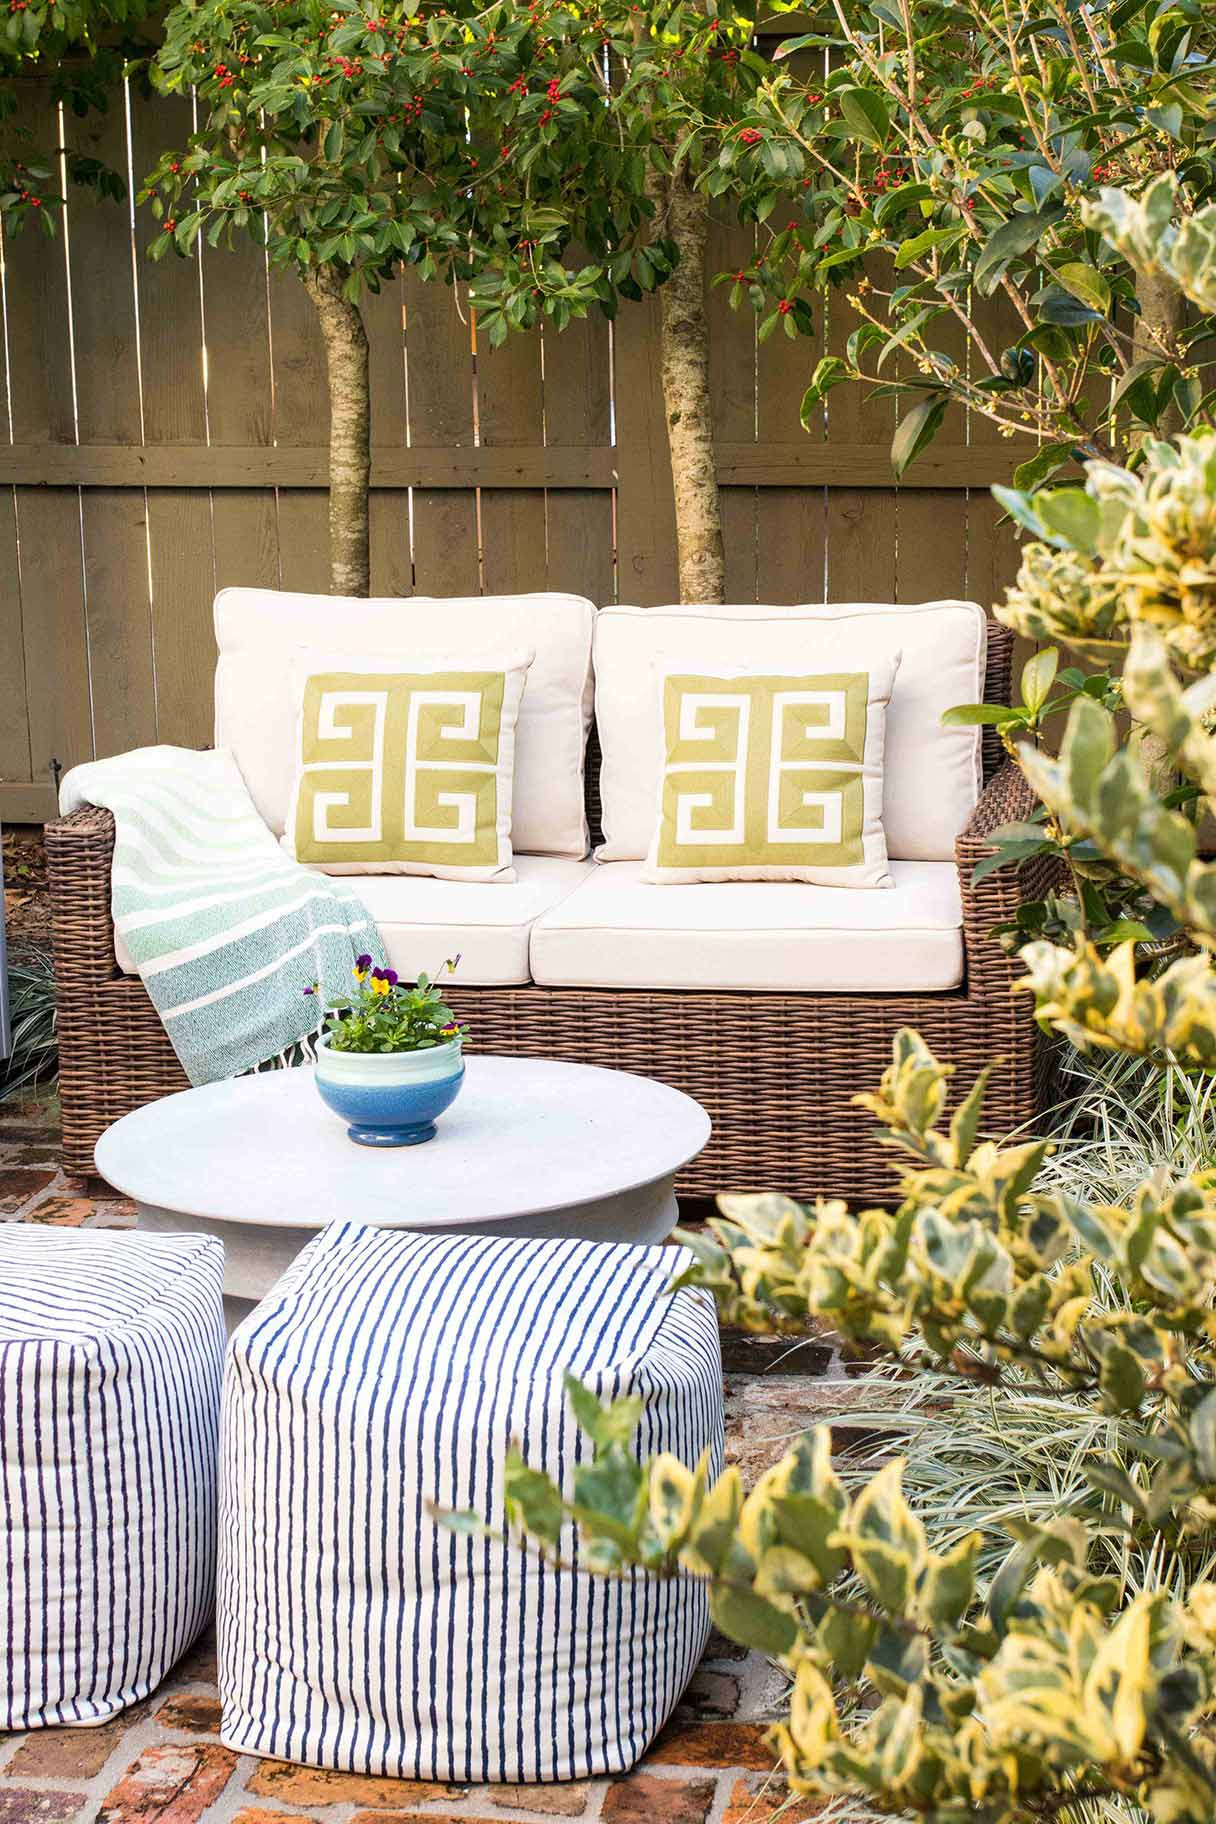 45 New How to Clean Patio Cushions Pics Patio Design Central